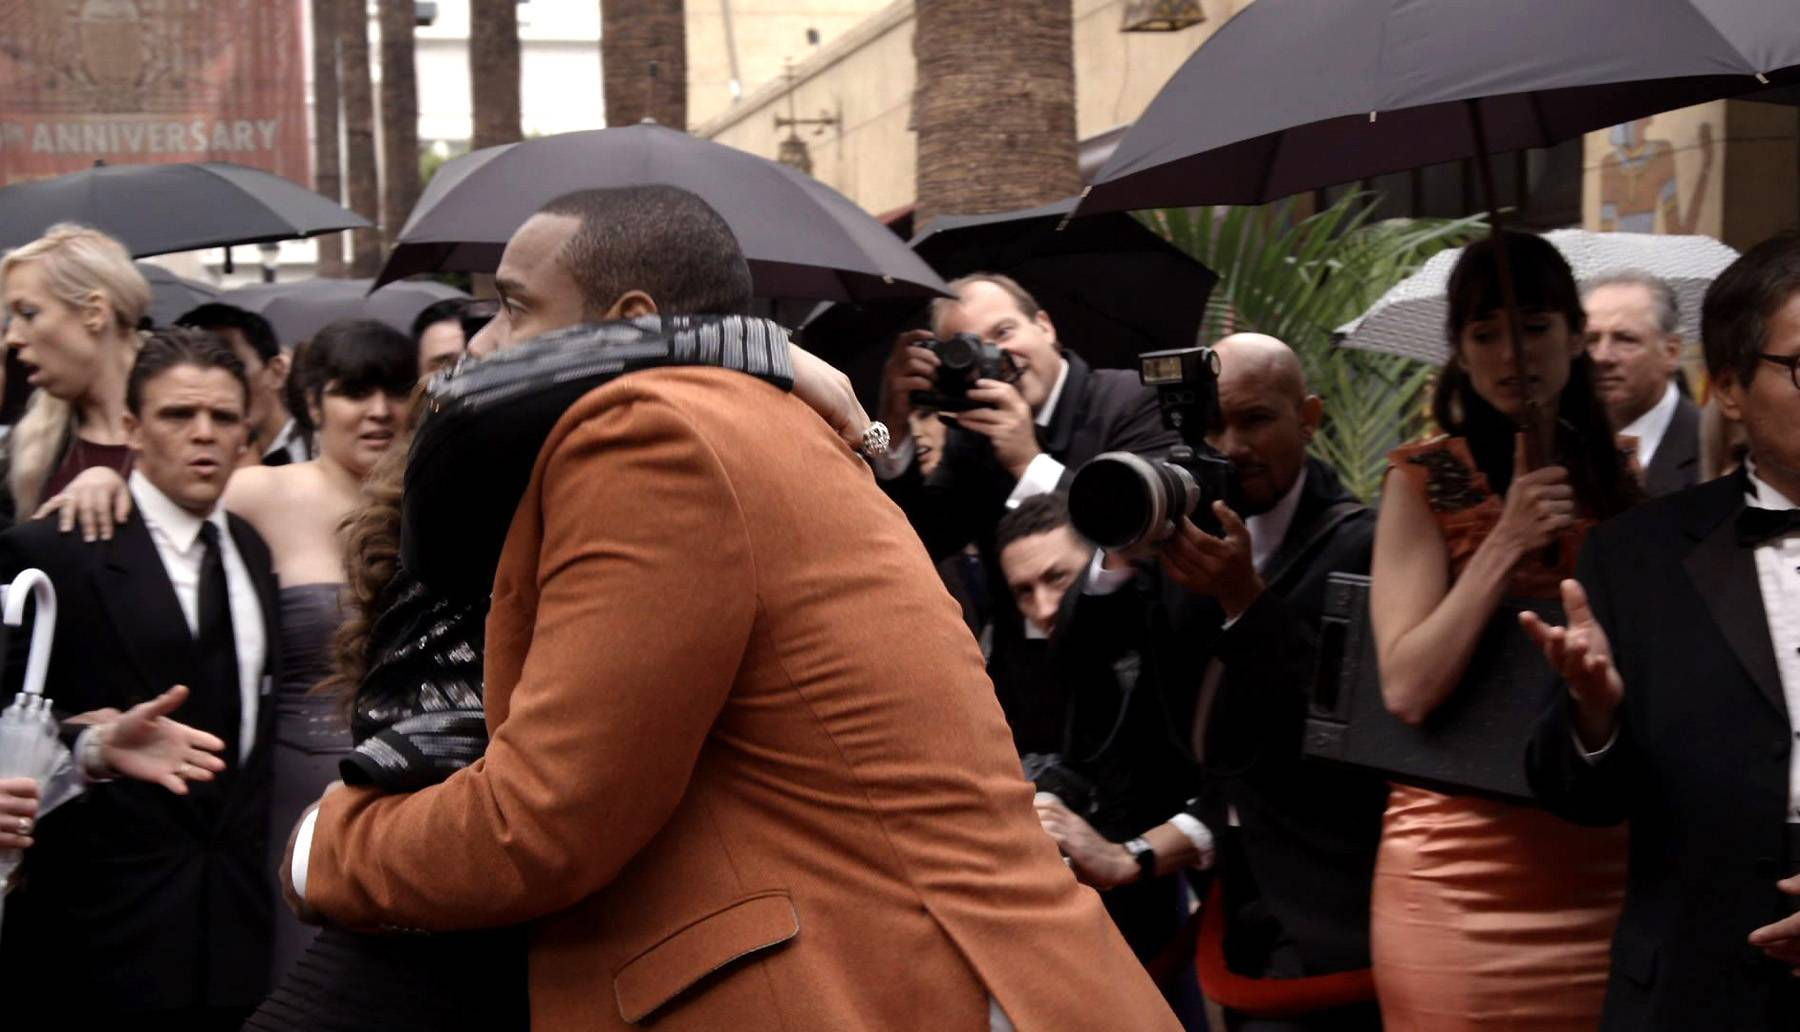 Duane Has Nothing But Love - However, the probation device on Tisha may present some problems in their marriage.  (Photo: BET)